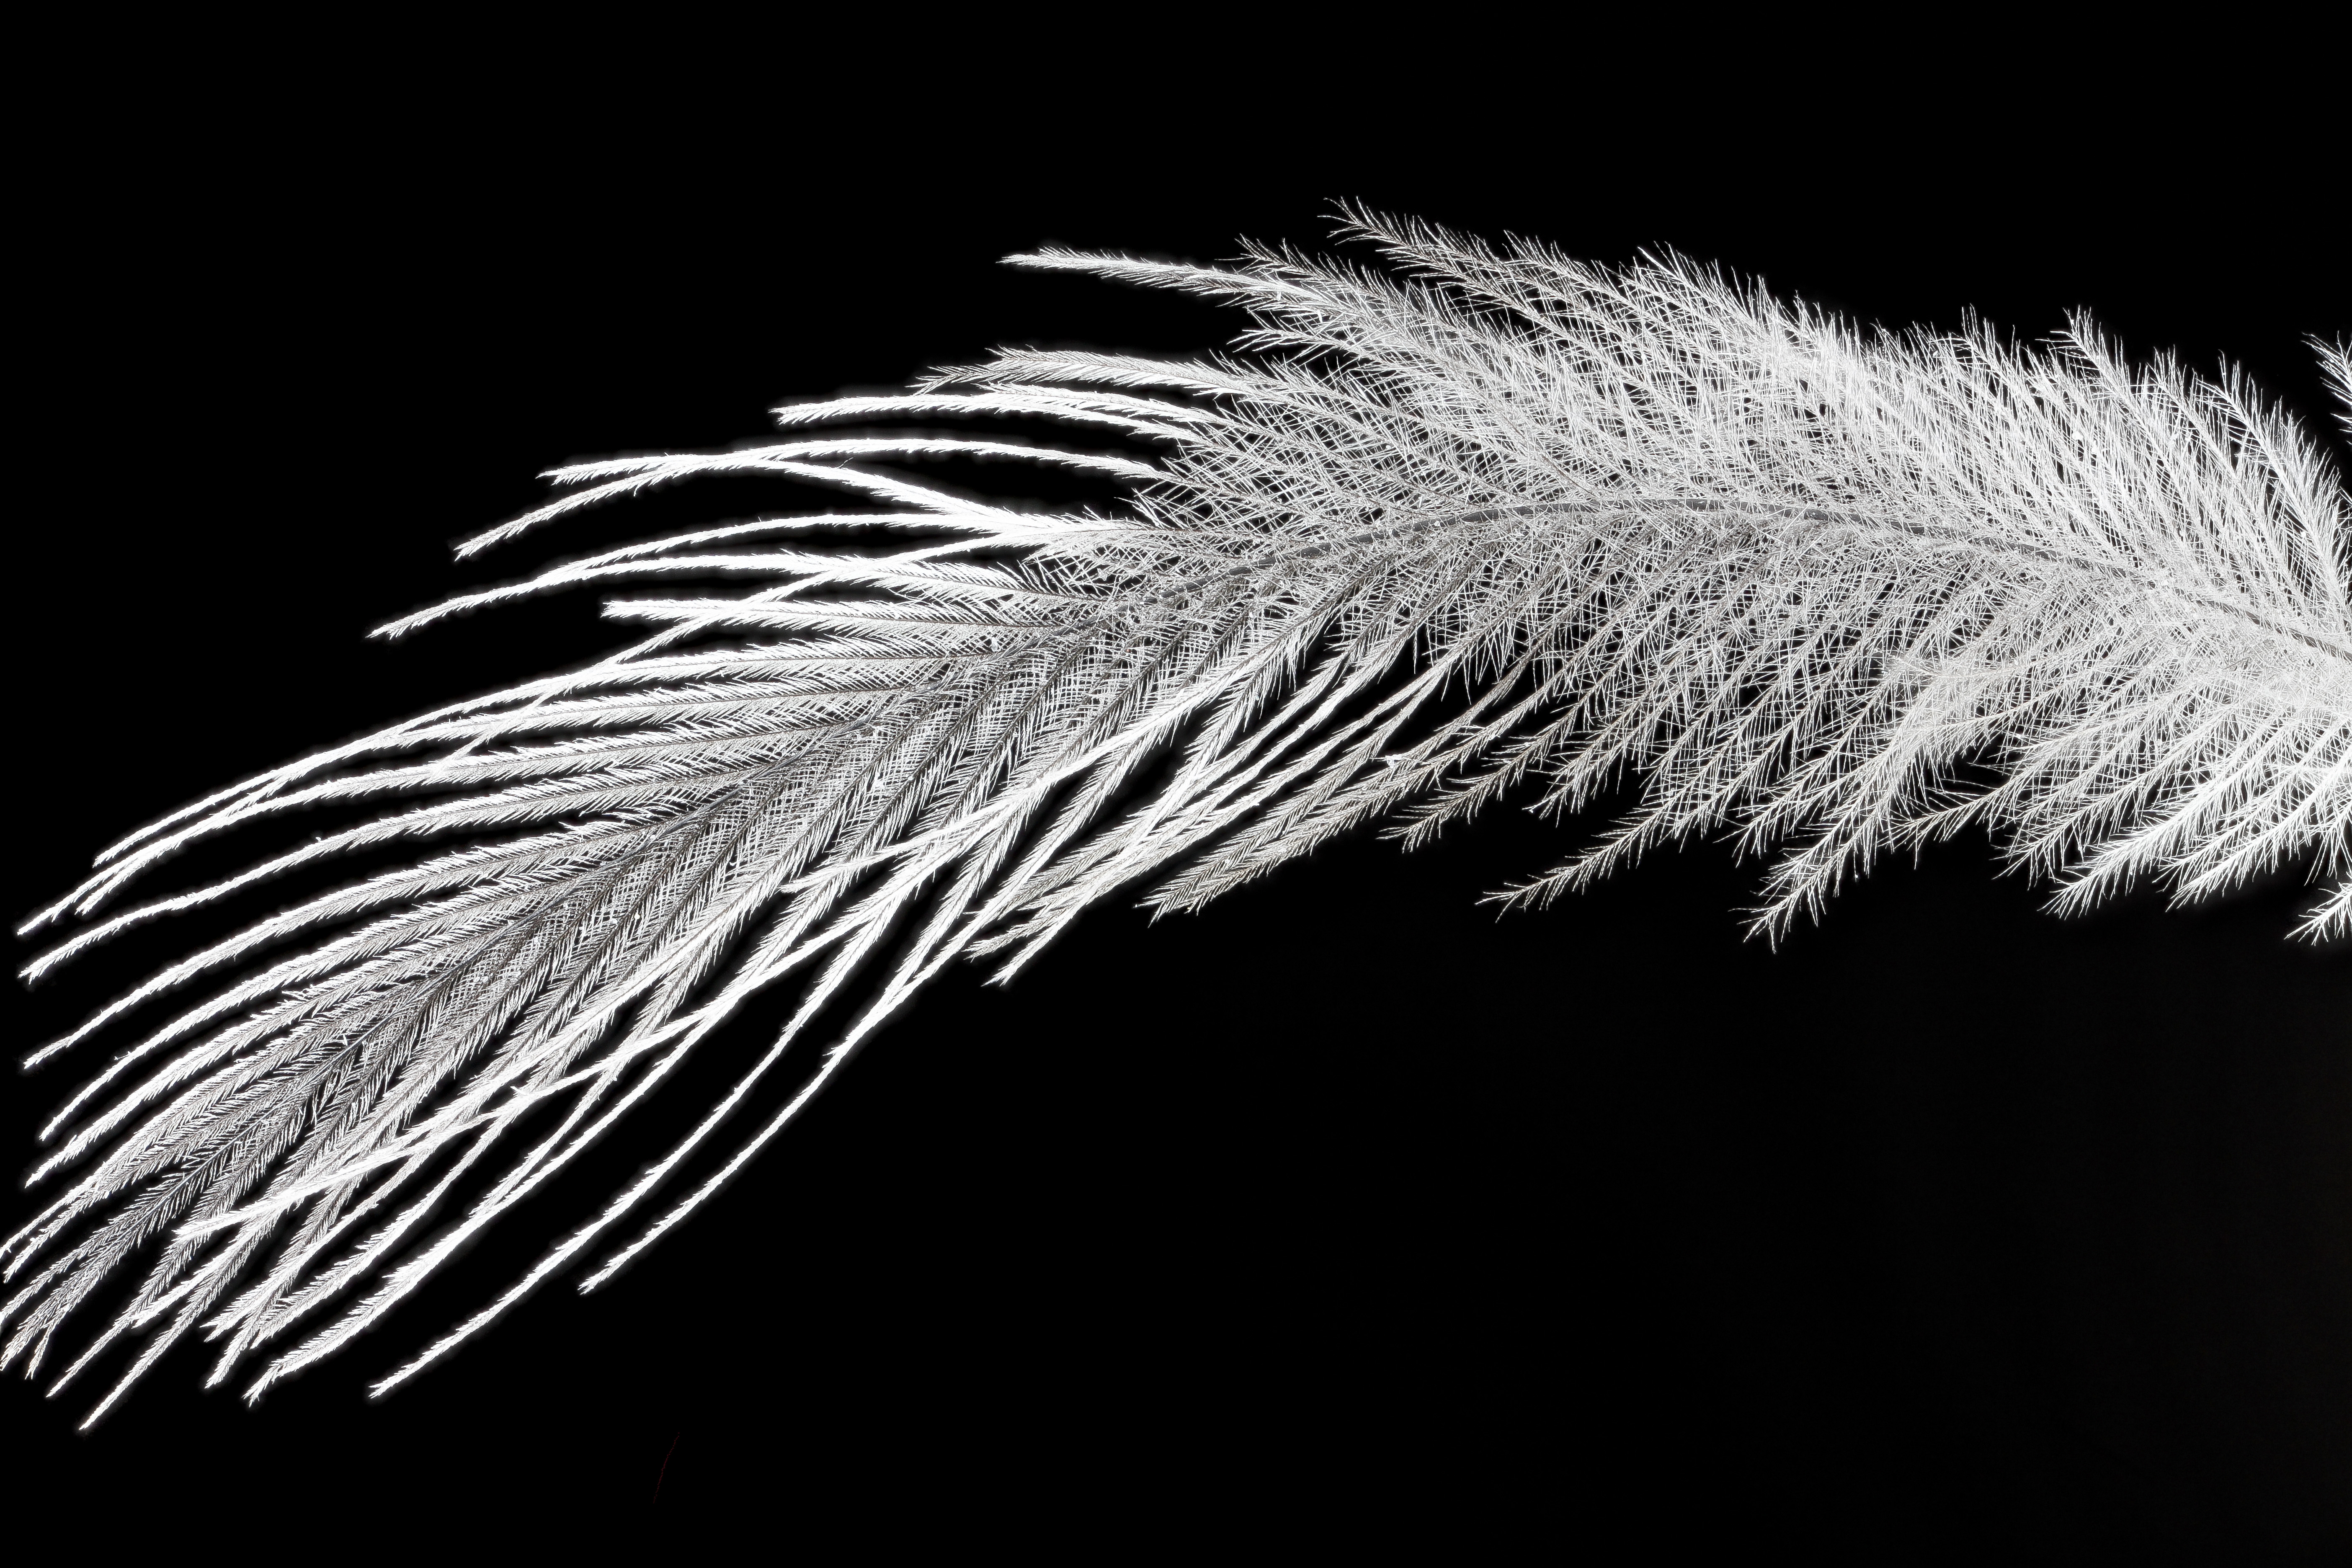 File Whooping Crane Feather 2012 09 25 16 33 16 Zs Pmax